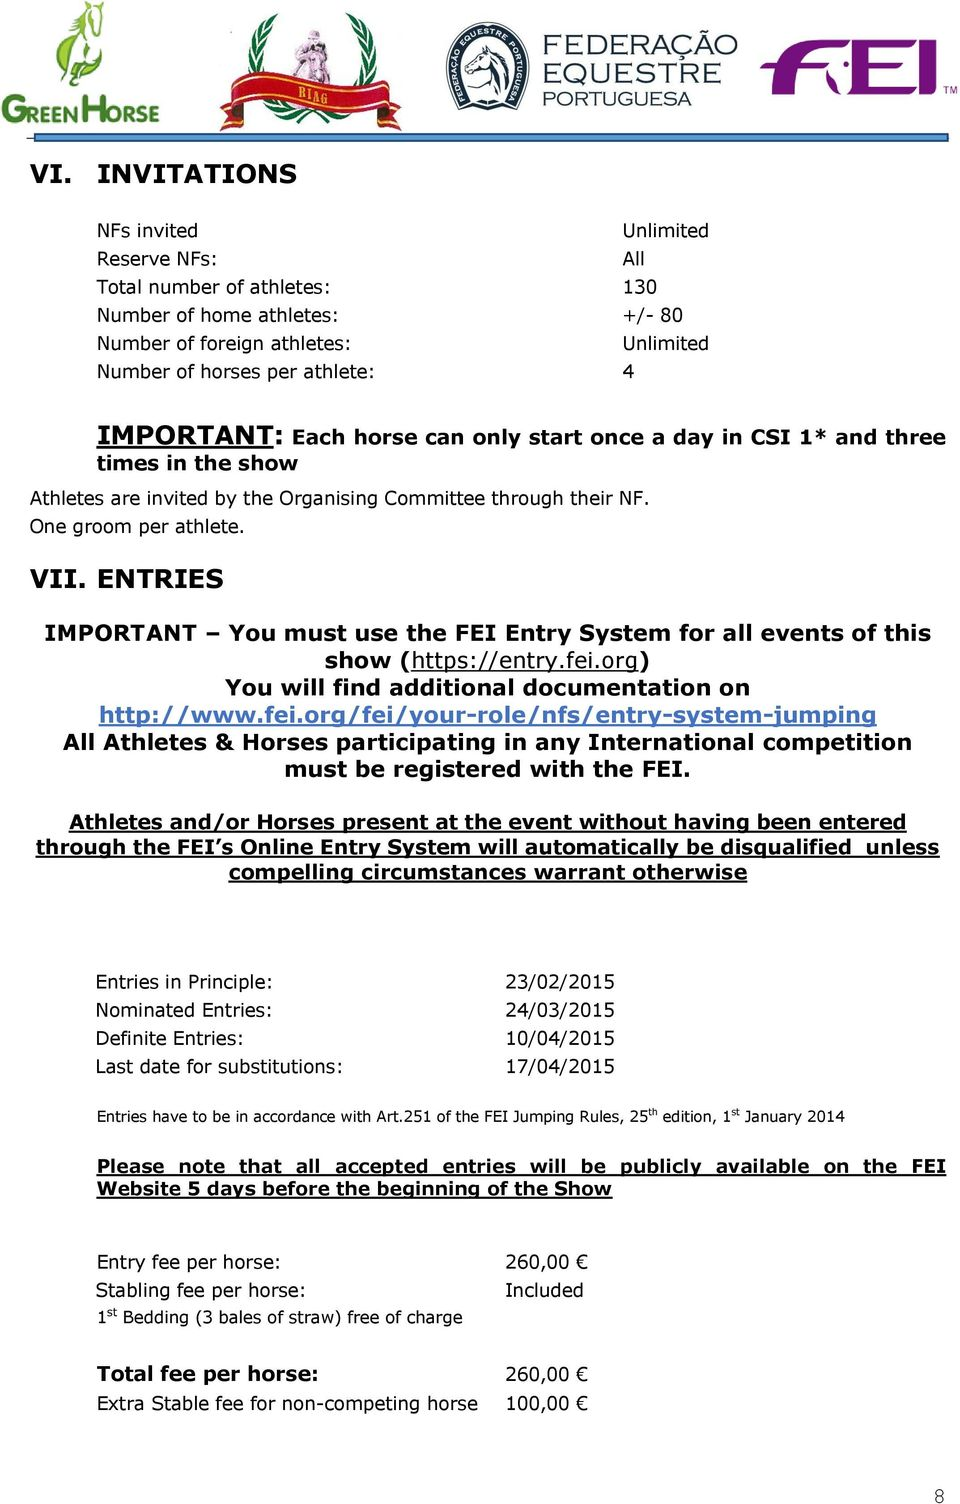 ENTRIES IMPORTANT You must use the FEI Entry System for all events of this show (https://entry.fei.